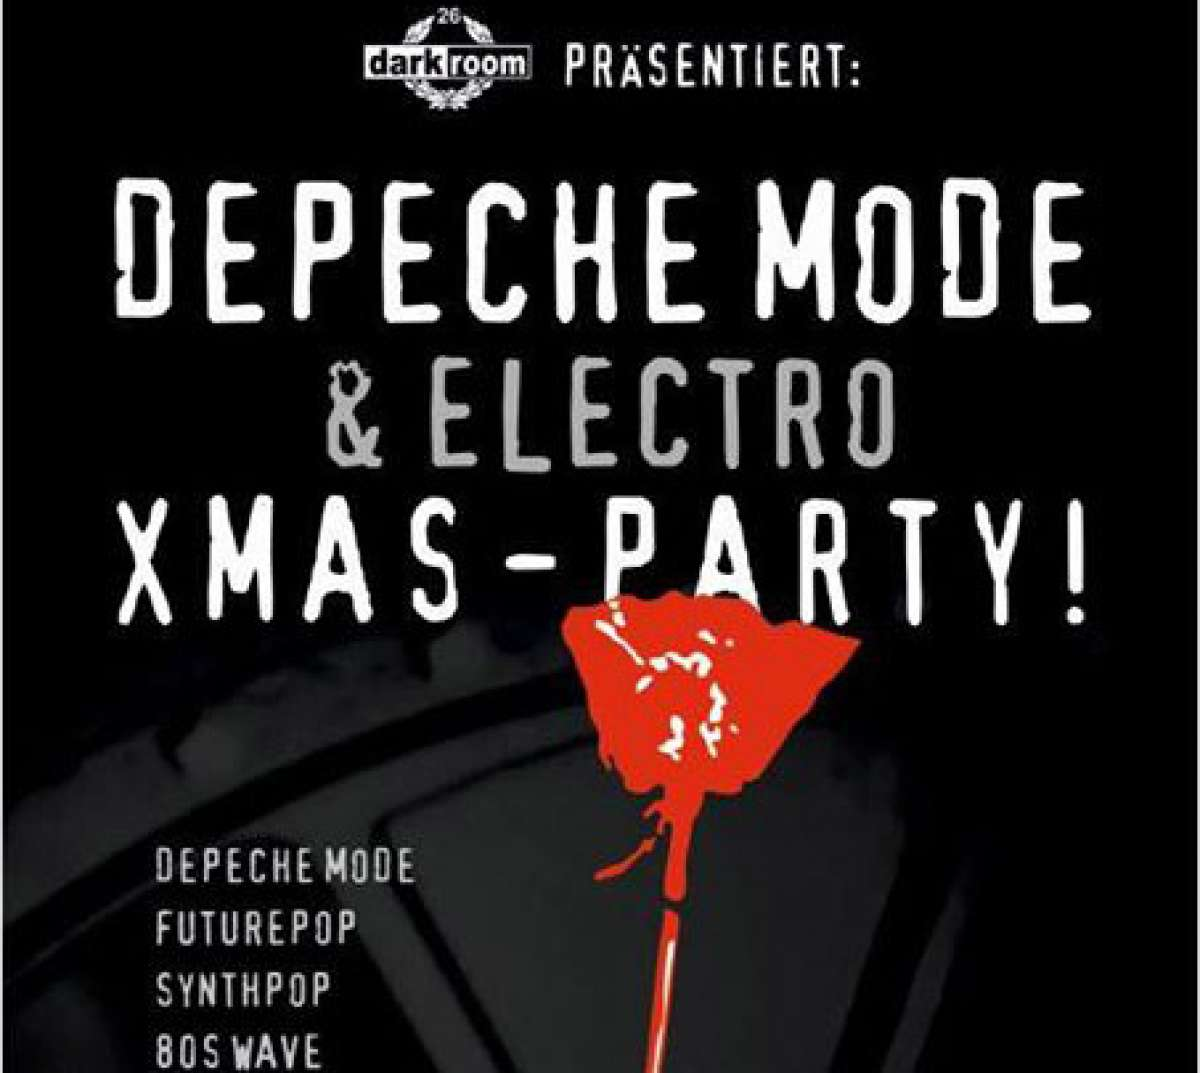 Depeche Mode & Electro Xmas-Party - Gleis 1 - Kassel